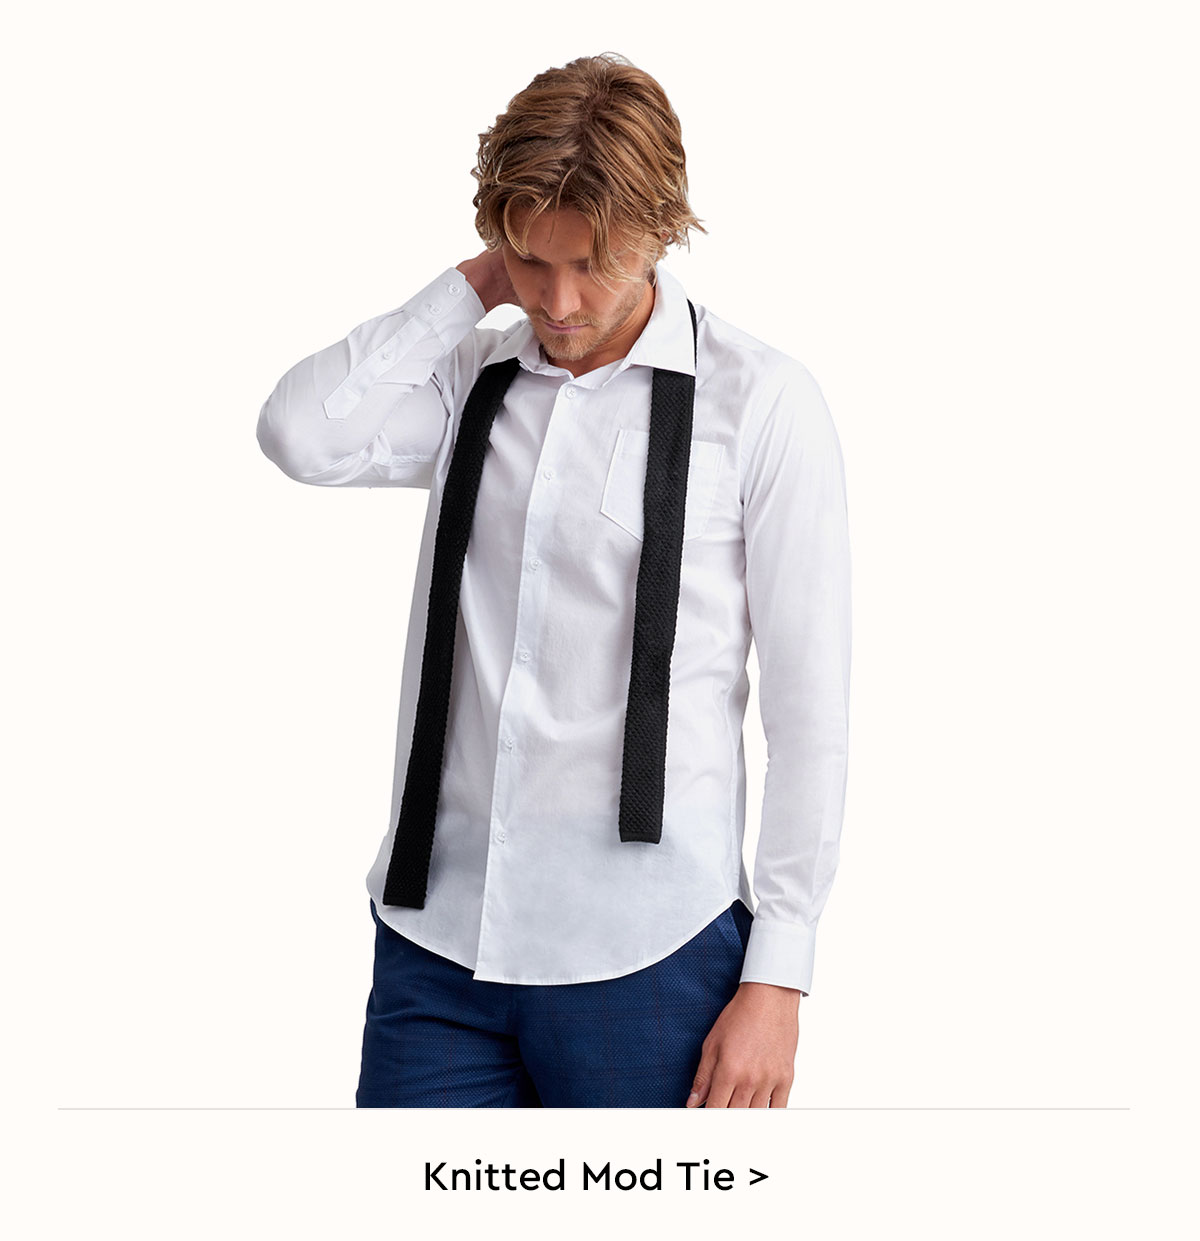 Knitted Mod Tie